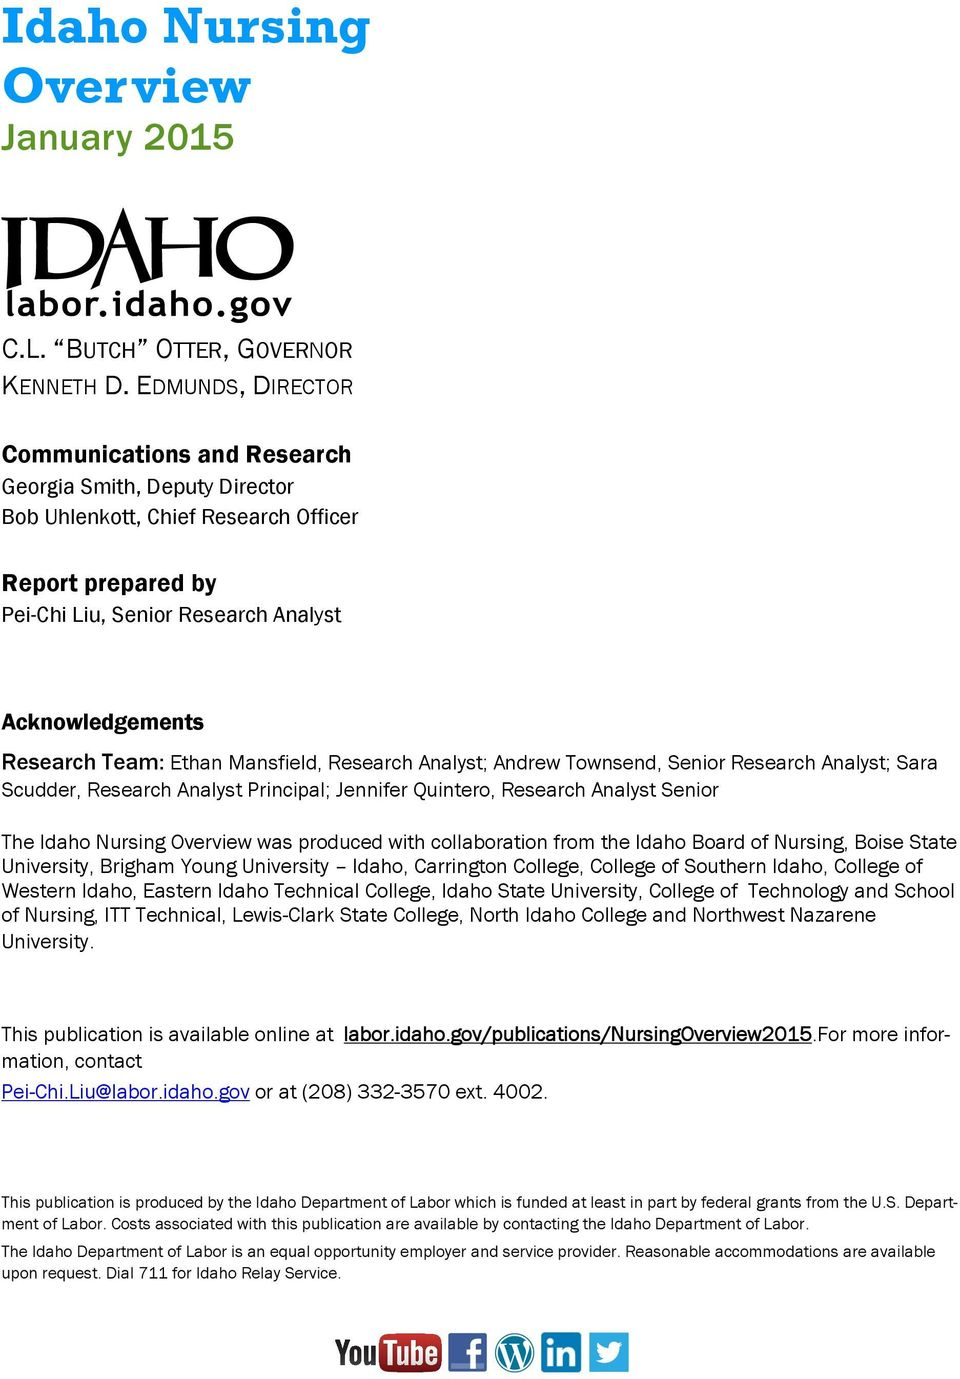 Team: Ethan Mansfield, Research Analyst; Andrew Townsend, Senior Research Analyst; Sara Scudder, Research Analyst Principal; Jennifer Quintero, Research Analyst Senior The Idaho Nursing Overview was